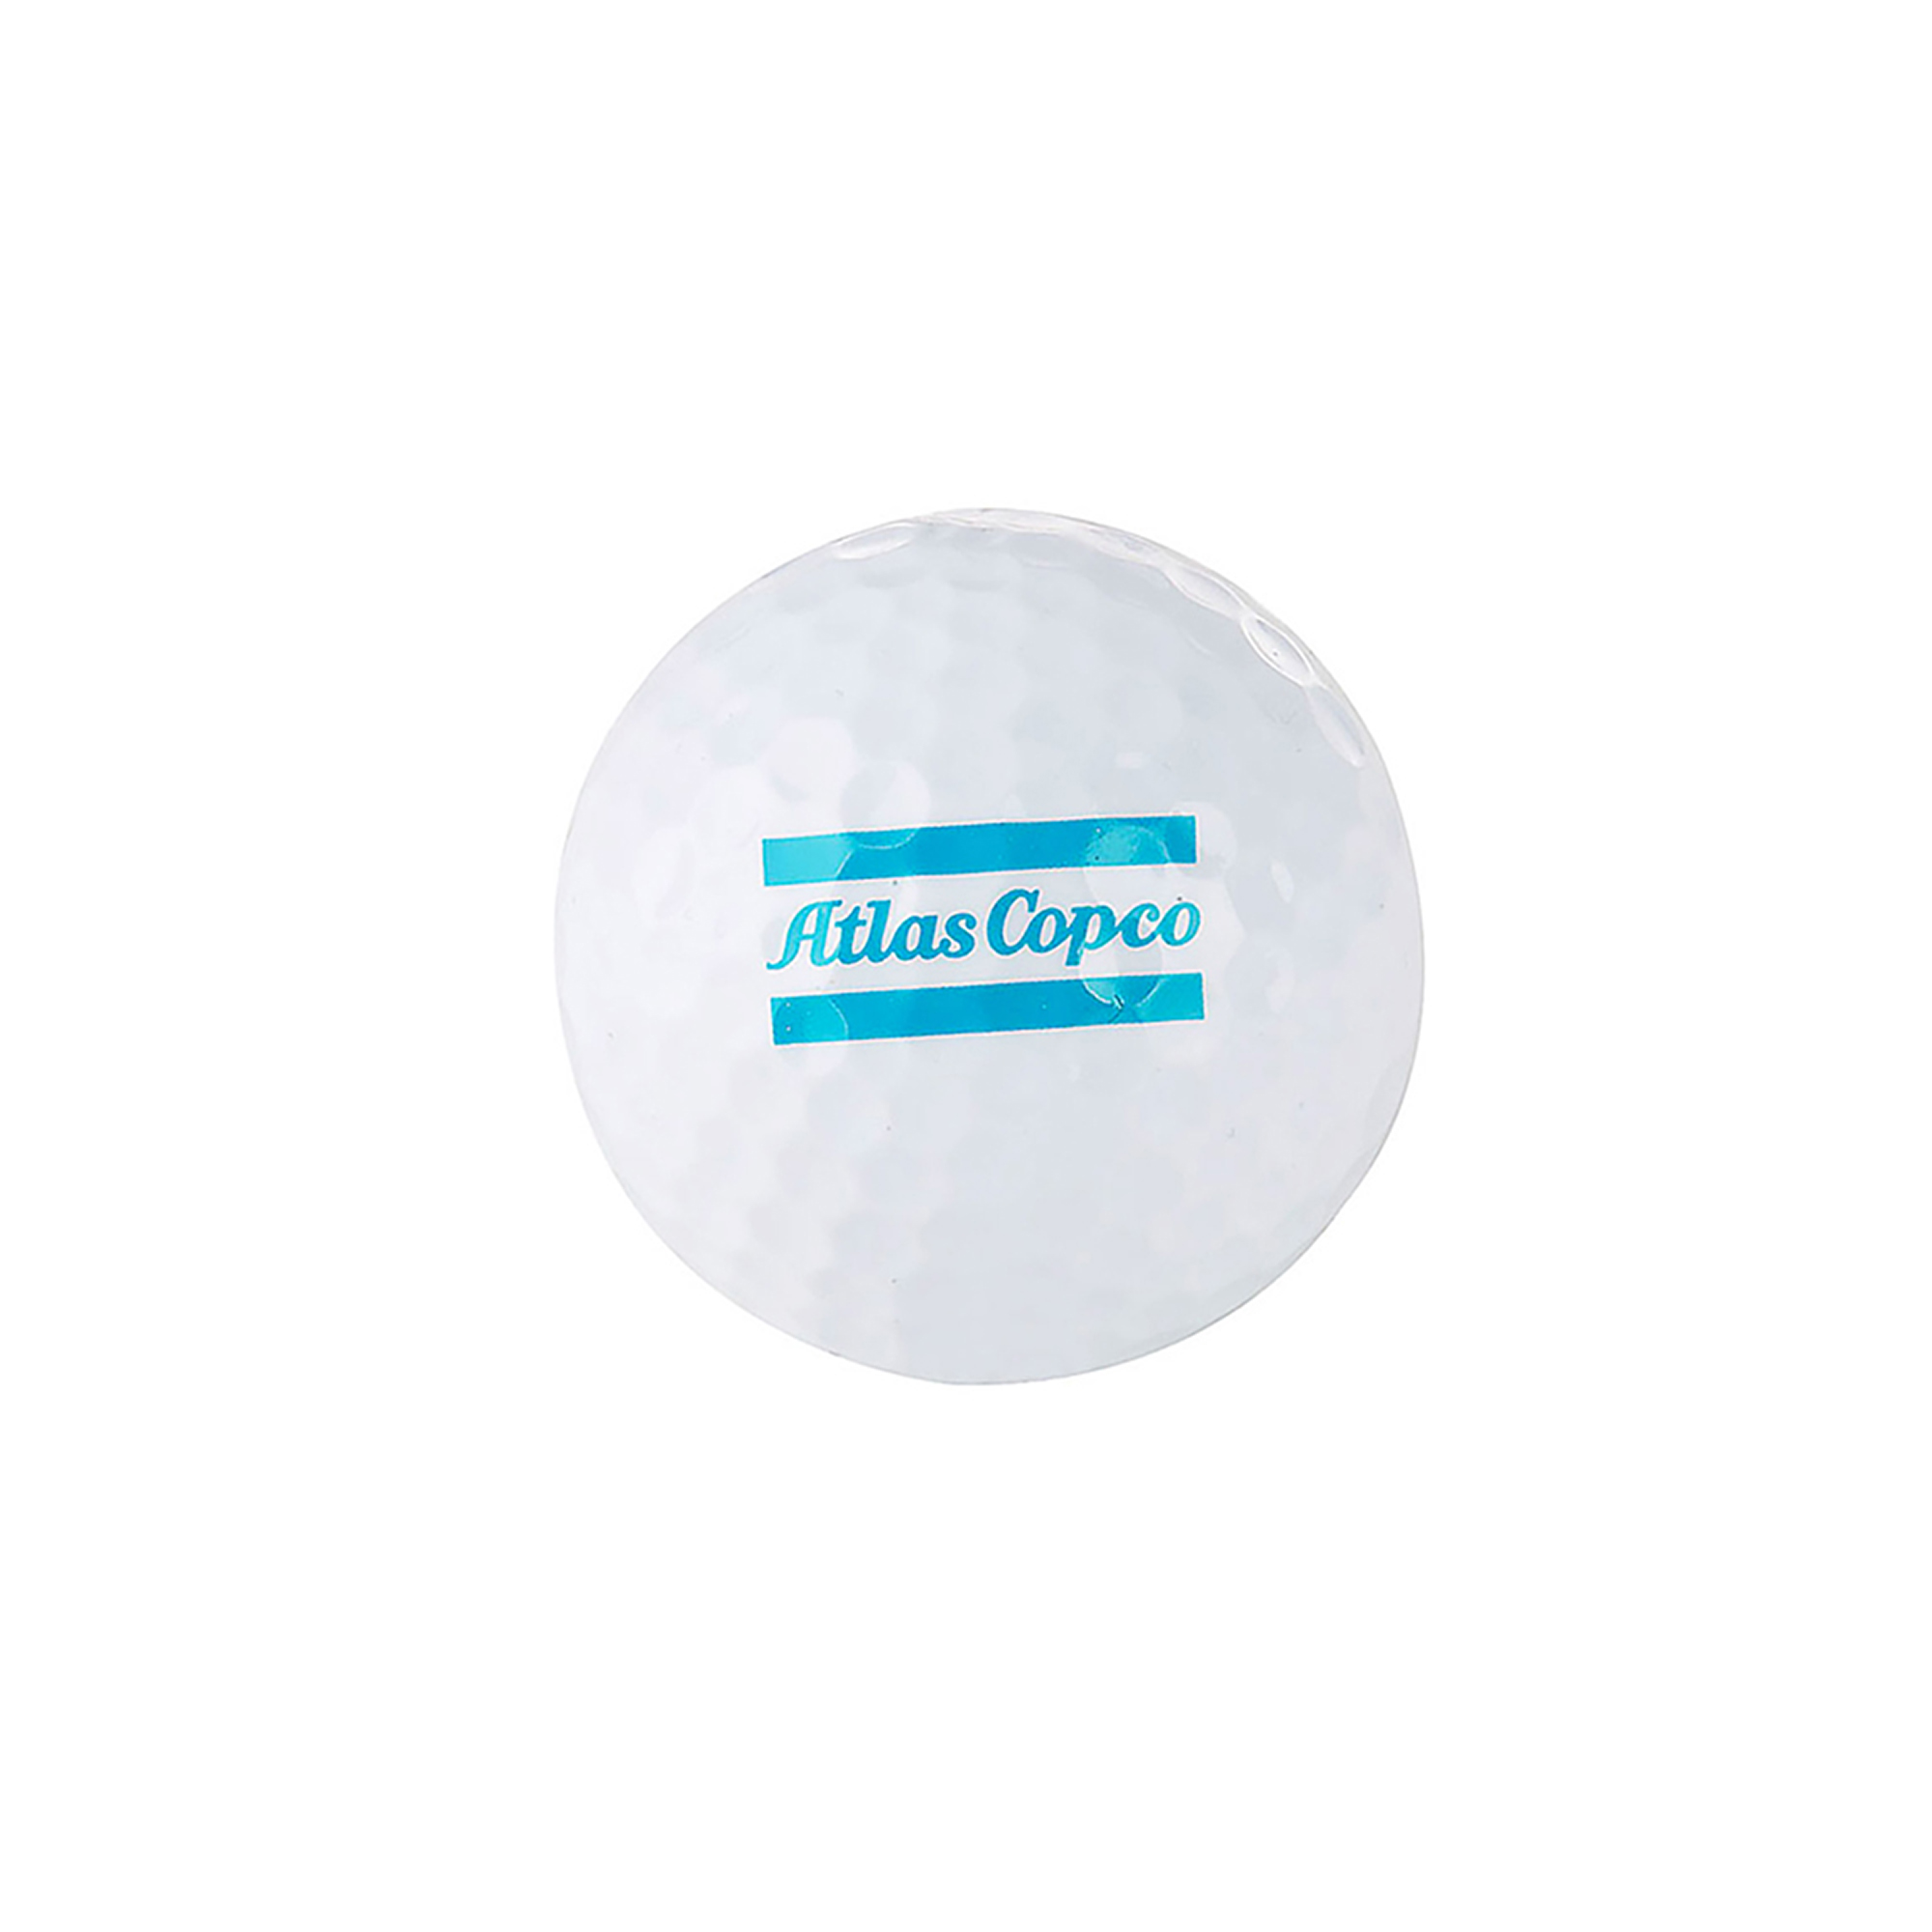 Play with quality golf balls from Titleist with printed Atlas Copco logo. Each box contains 12 balls.